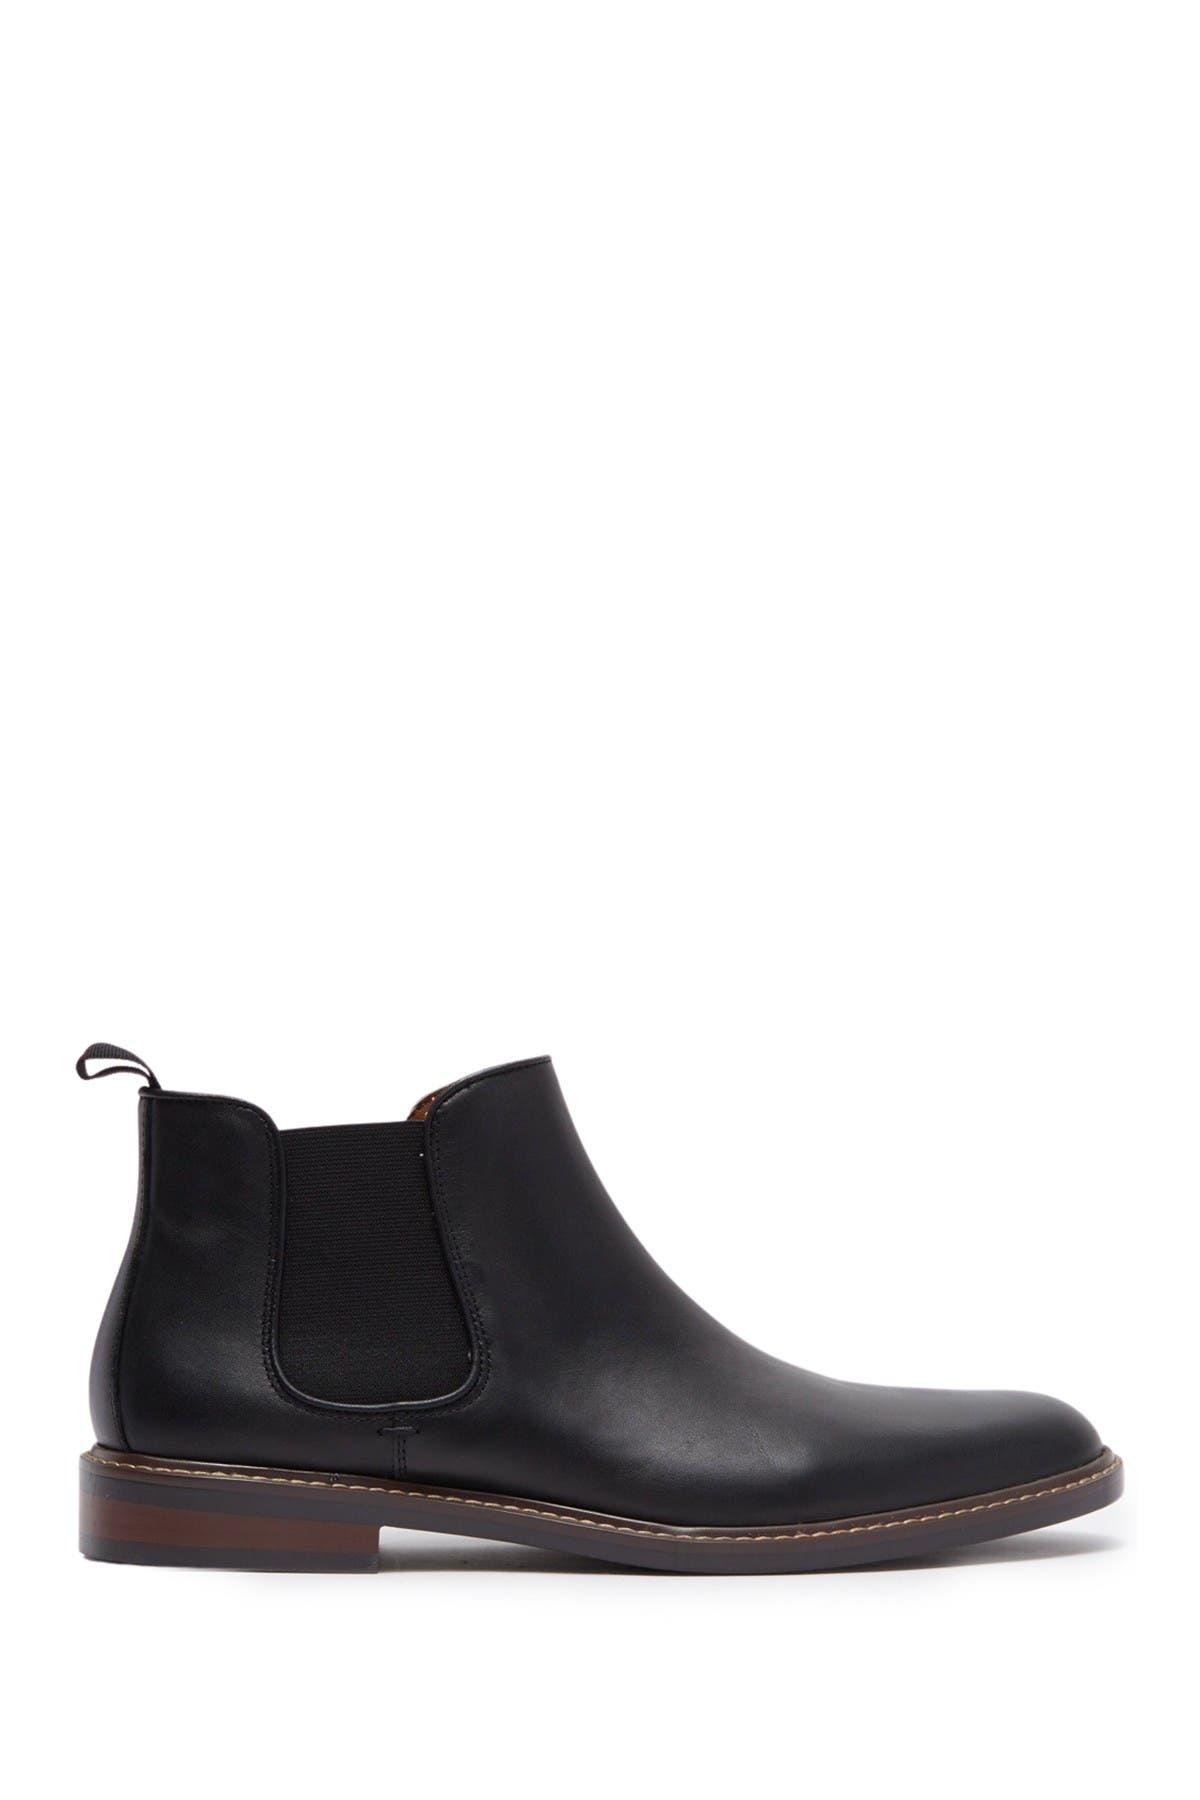 Image of WALLIN & BROS Edward-Lea Chelsea Boot